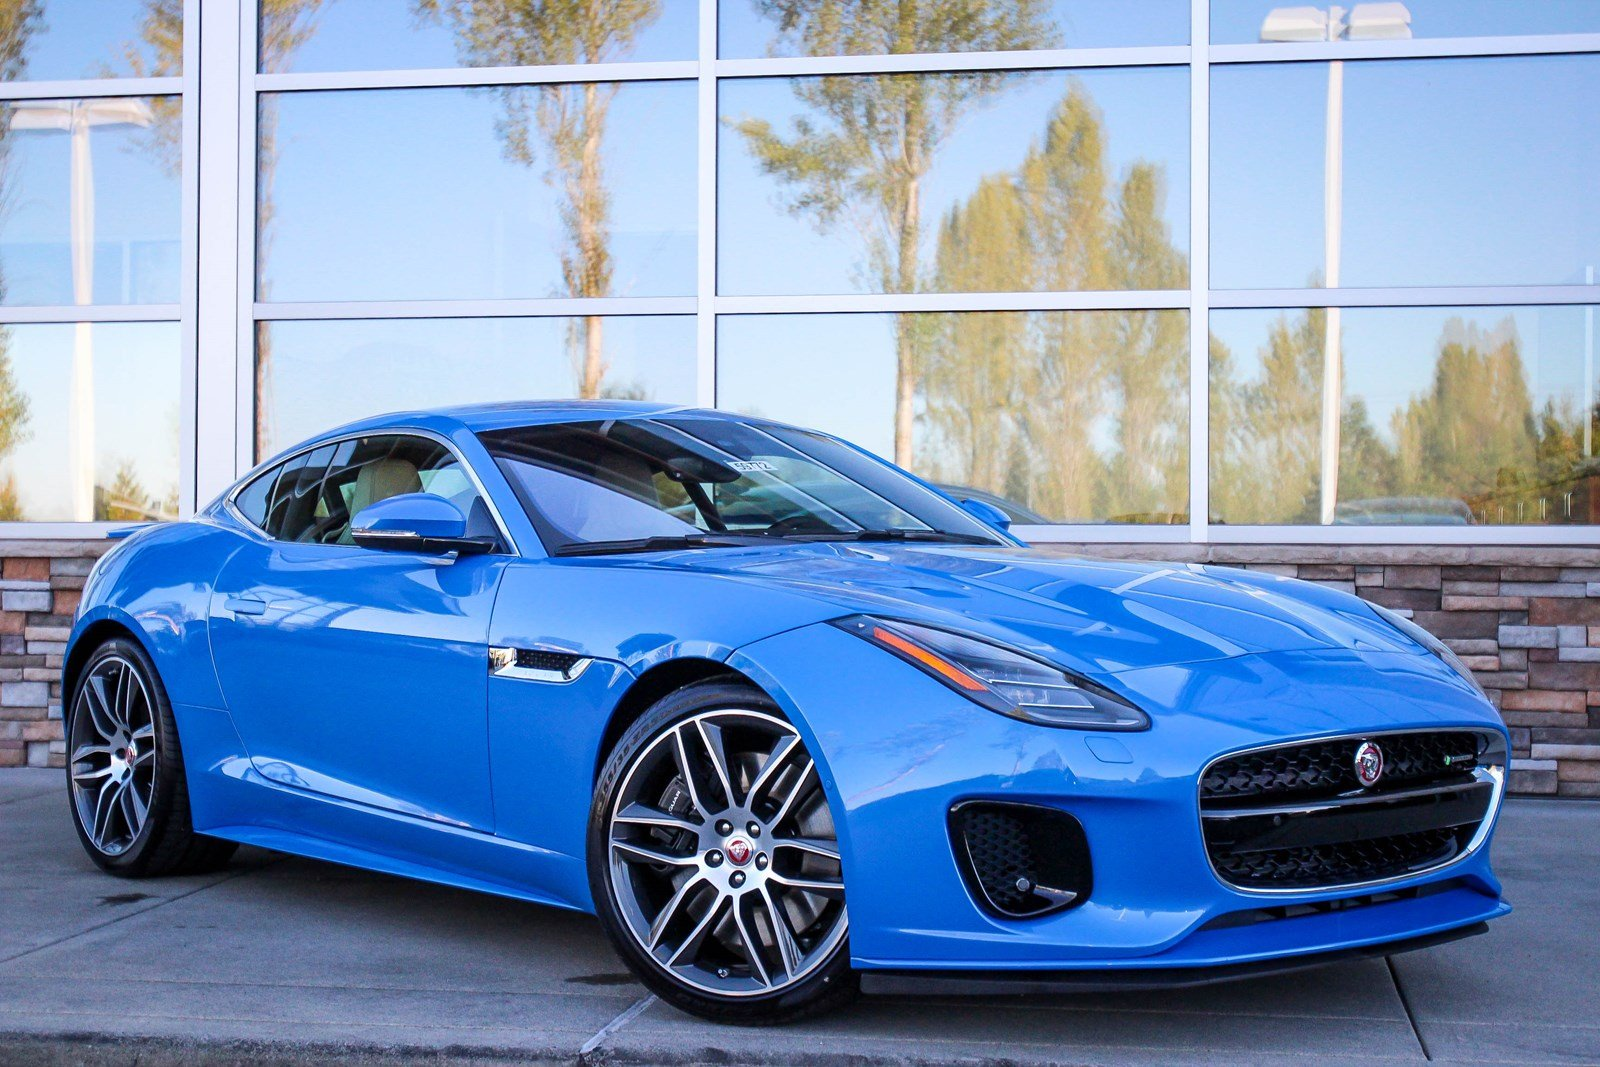 New 2018 Jaguar F-TYPE R-Dynamic 2dr Car in Lynnwood #59772 | Jaguar ...